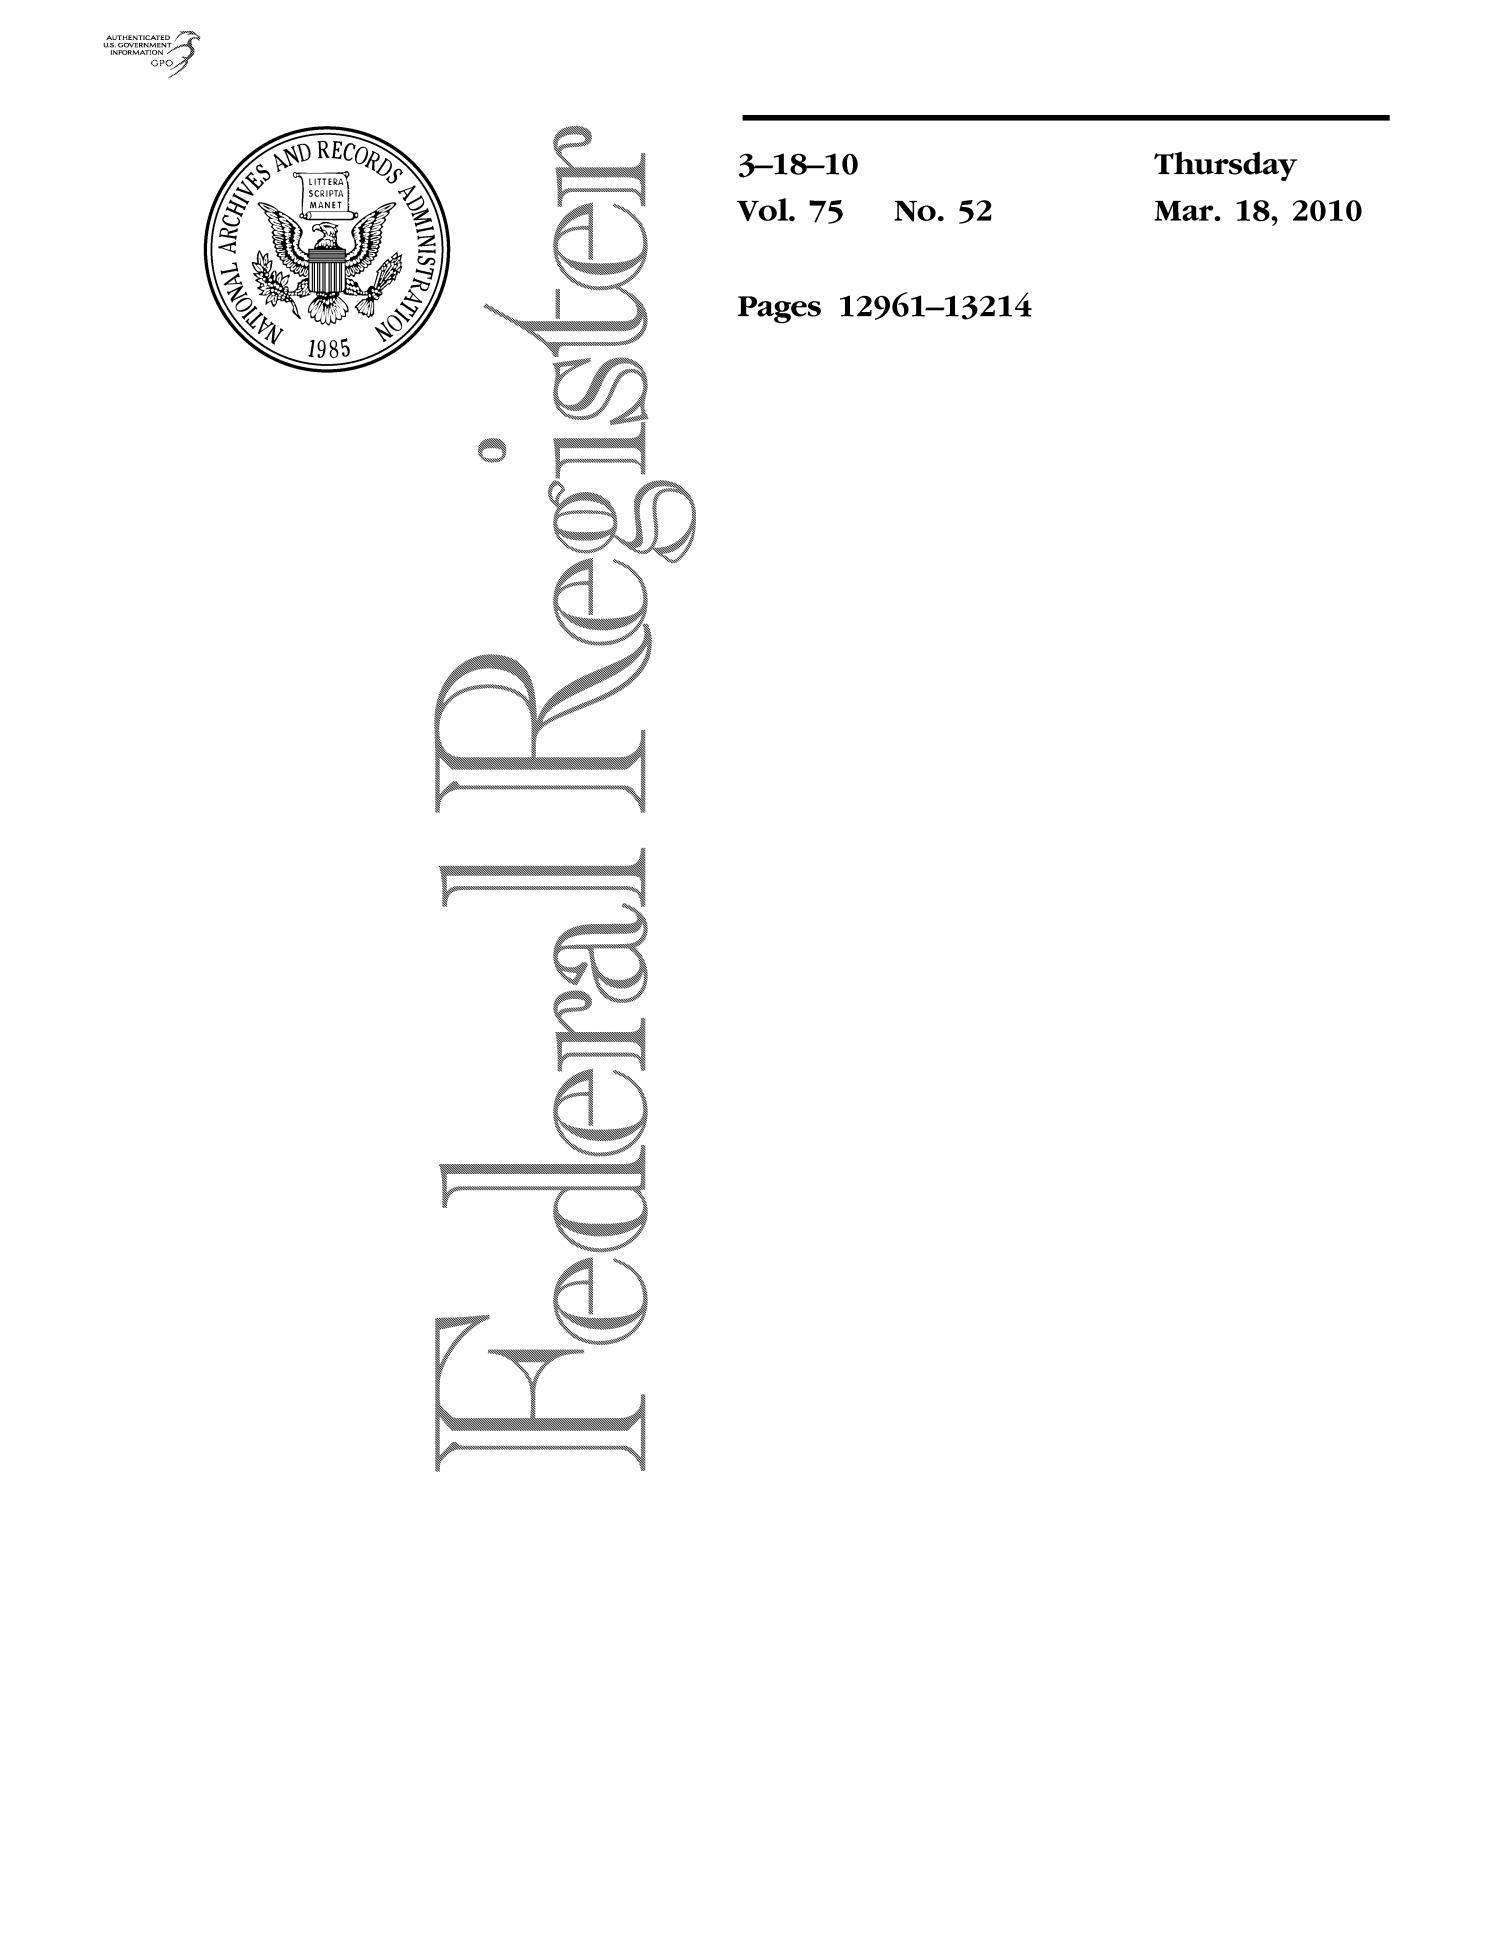 Federal Register, Volume 75, Number 52, March 18, 2010